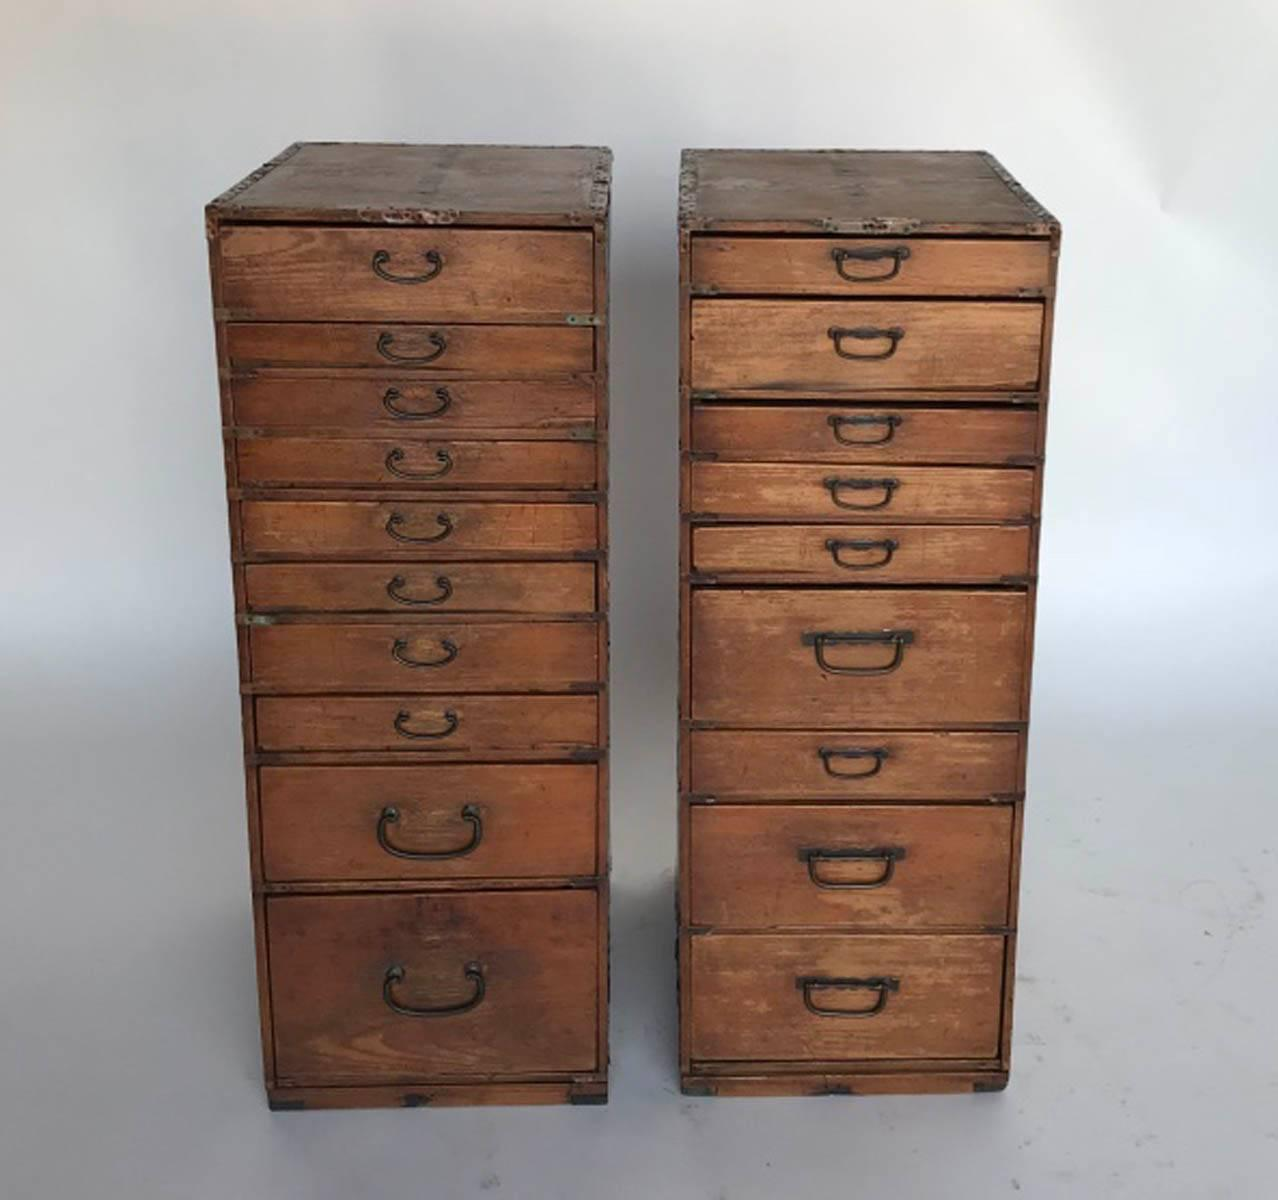 Bon These Are Two Old Shop Cabinets From Japan. Hinoki Wood. Shallow Drawers  With Metal